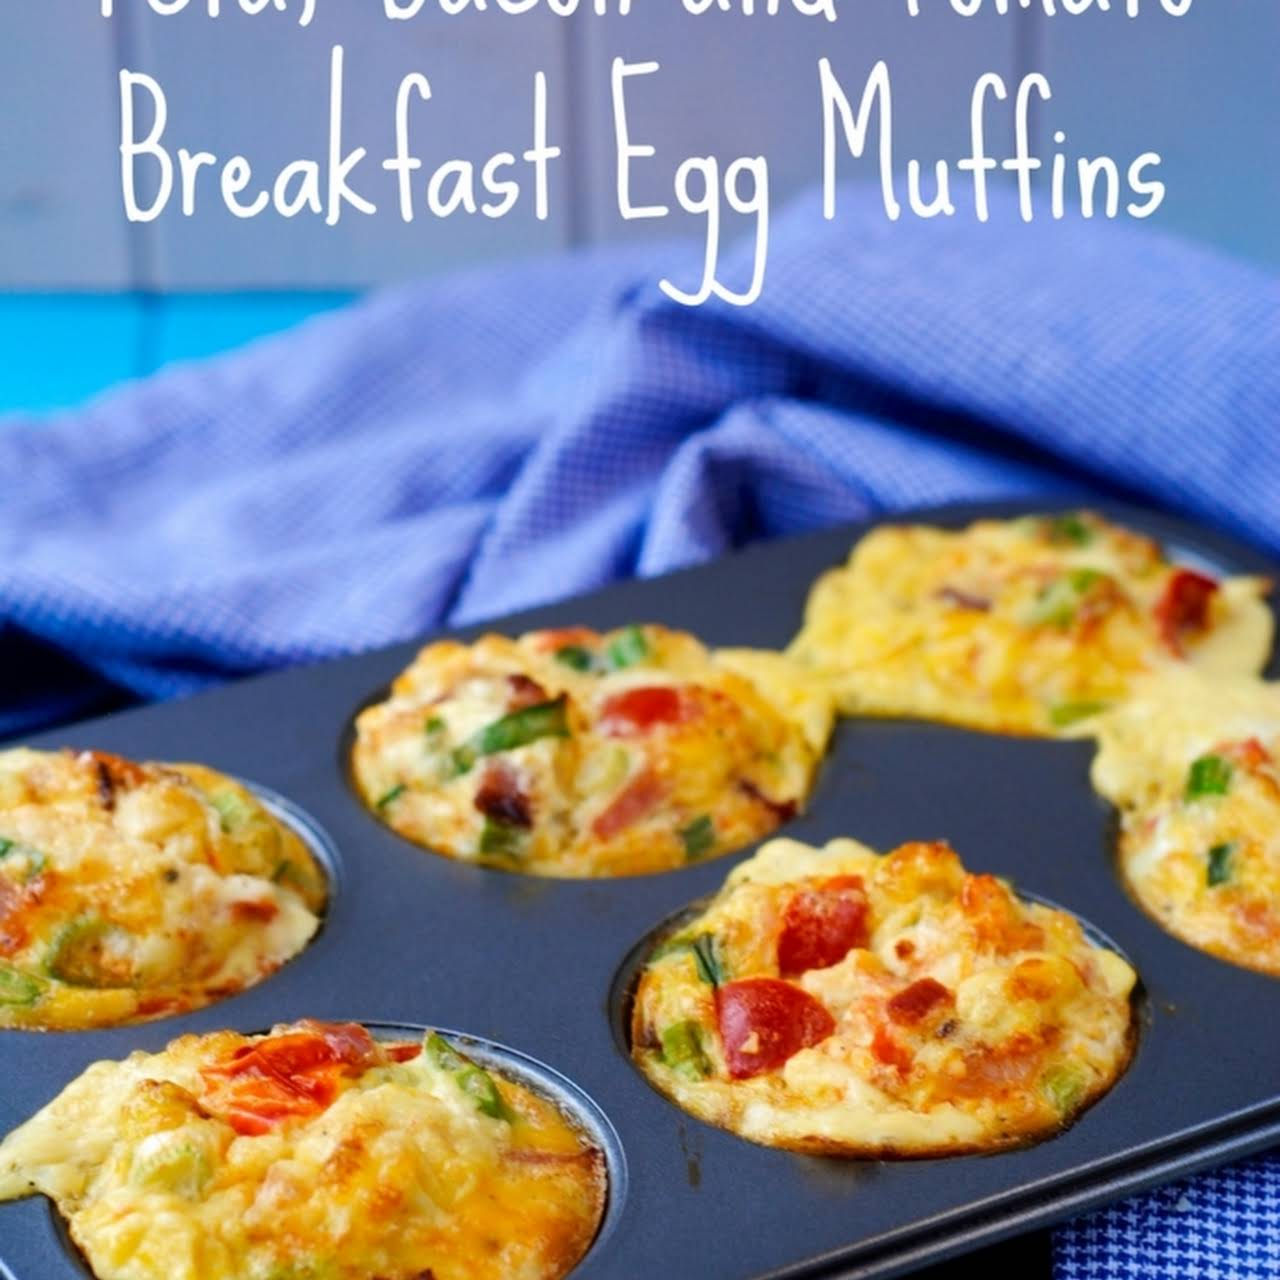 Feta, Bacon and Tomato Breakfast Egg Muffins